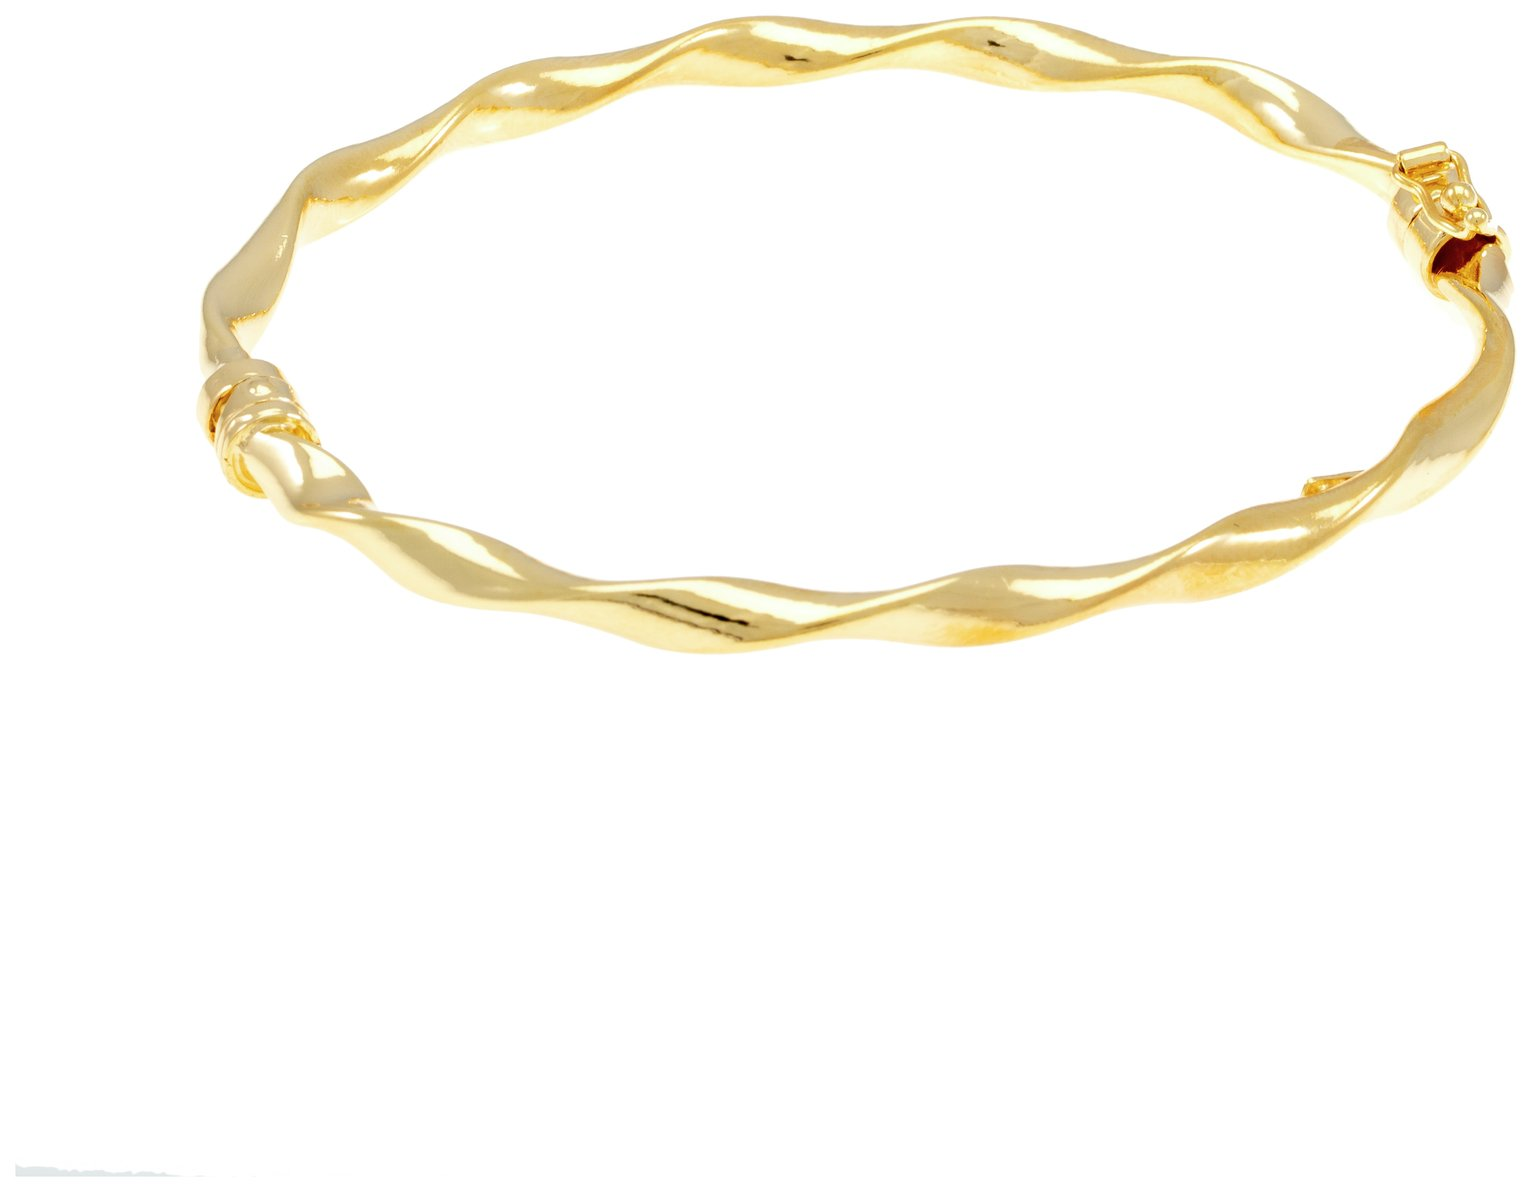 Revere 9ct Gold Plated Sterling Silver Hinged Twist Bangle